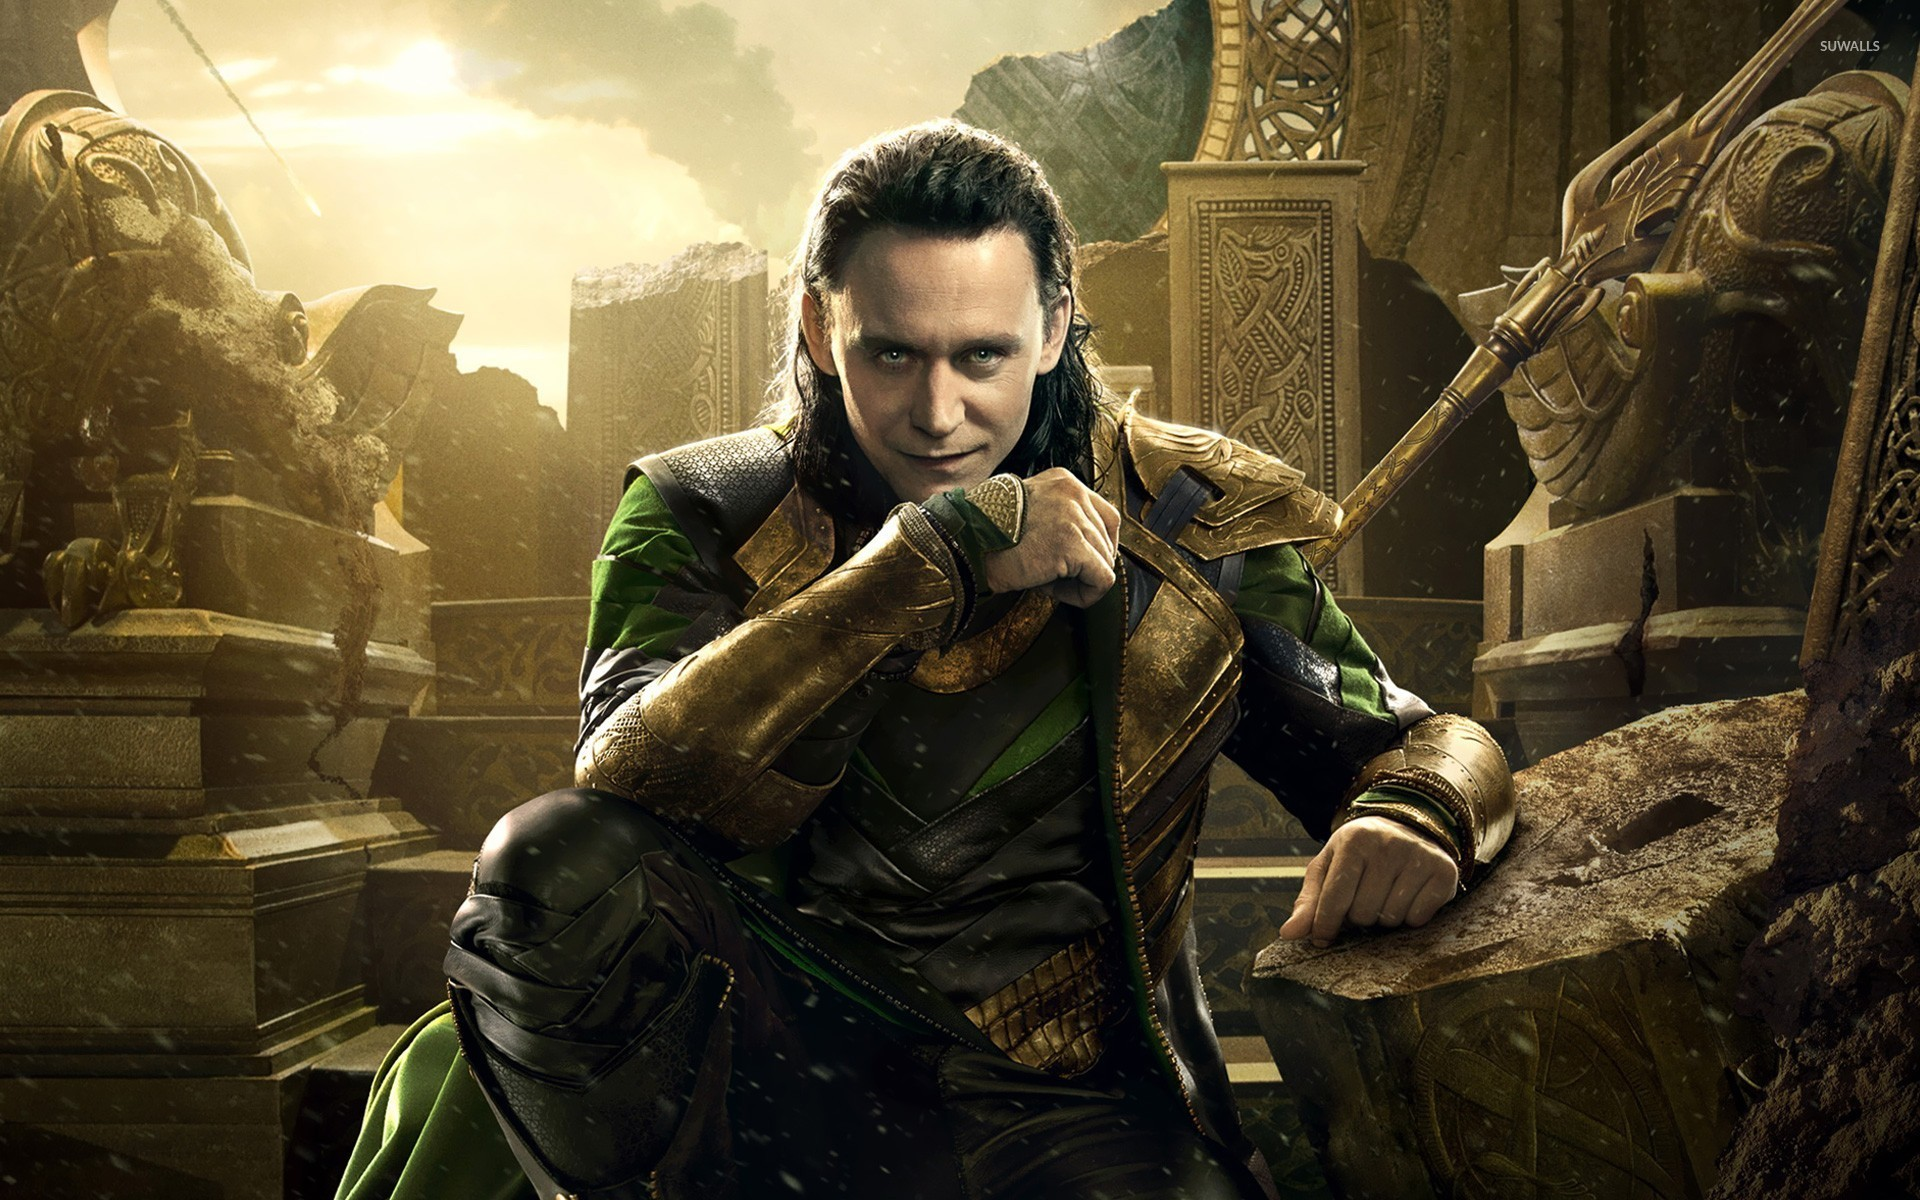 Loki - Thor: The Dark World wallpaper - Movie wallpapers ...